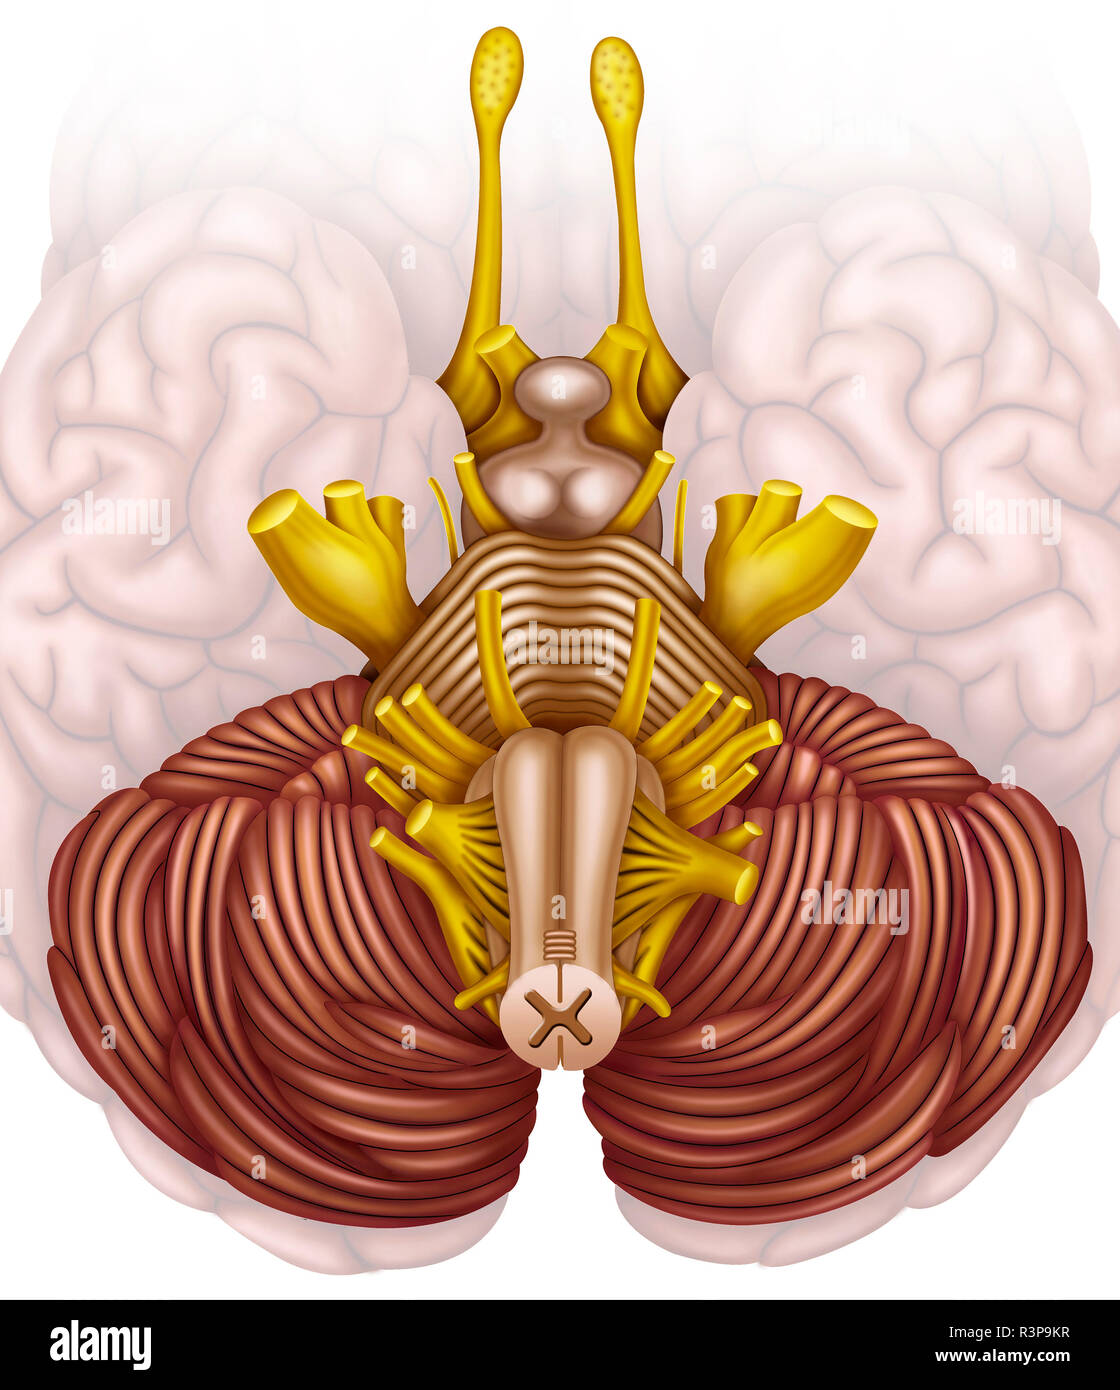 Schematic and descriptive illustration of the human brain stem. - Stock Image